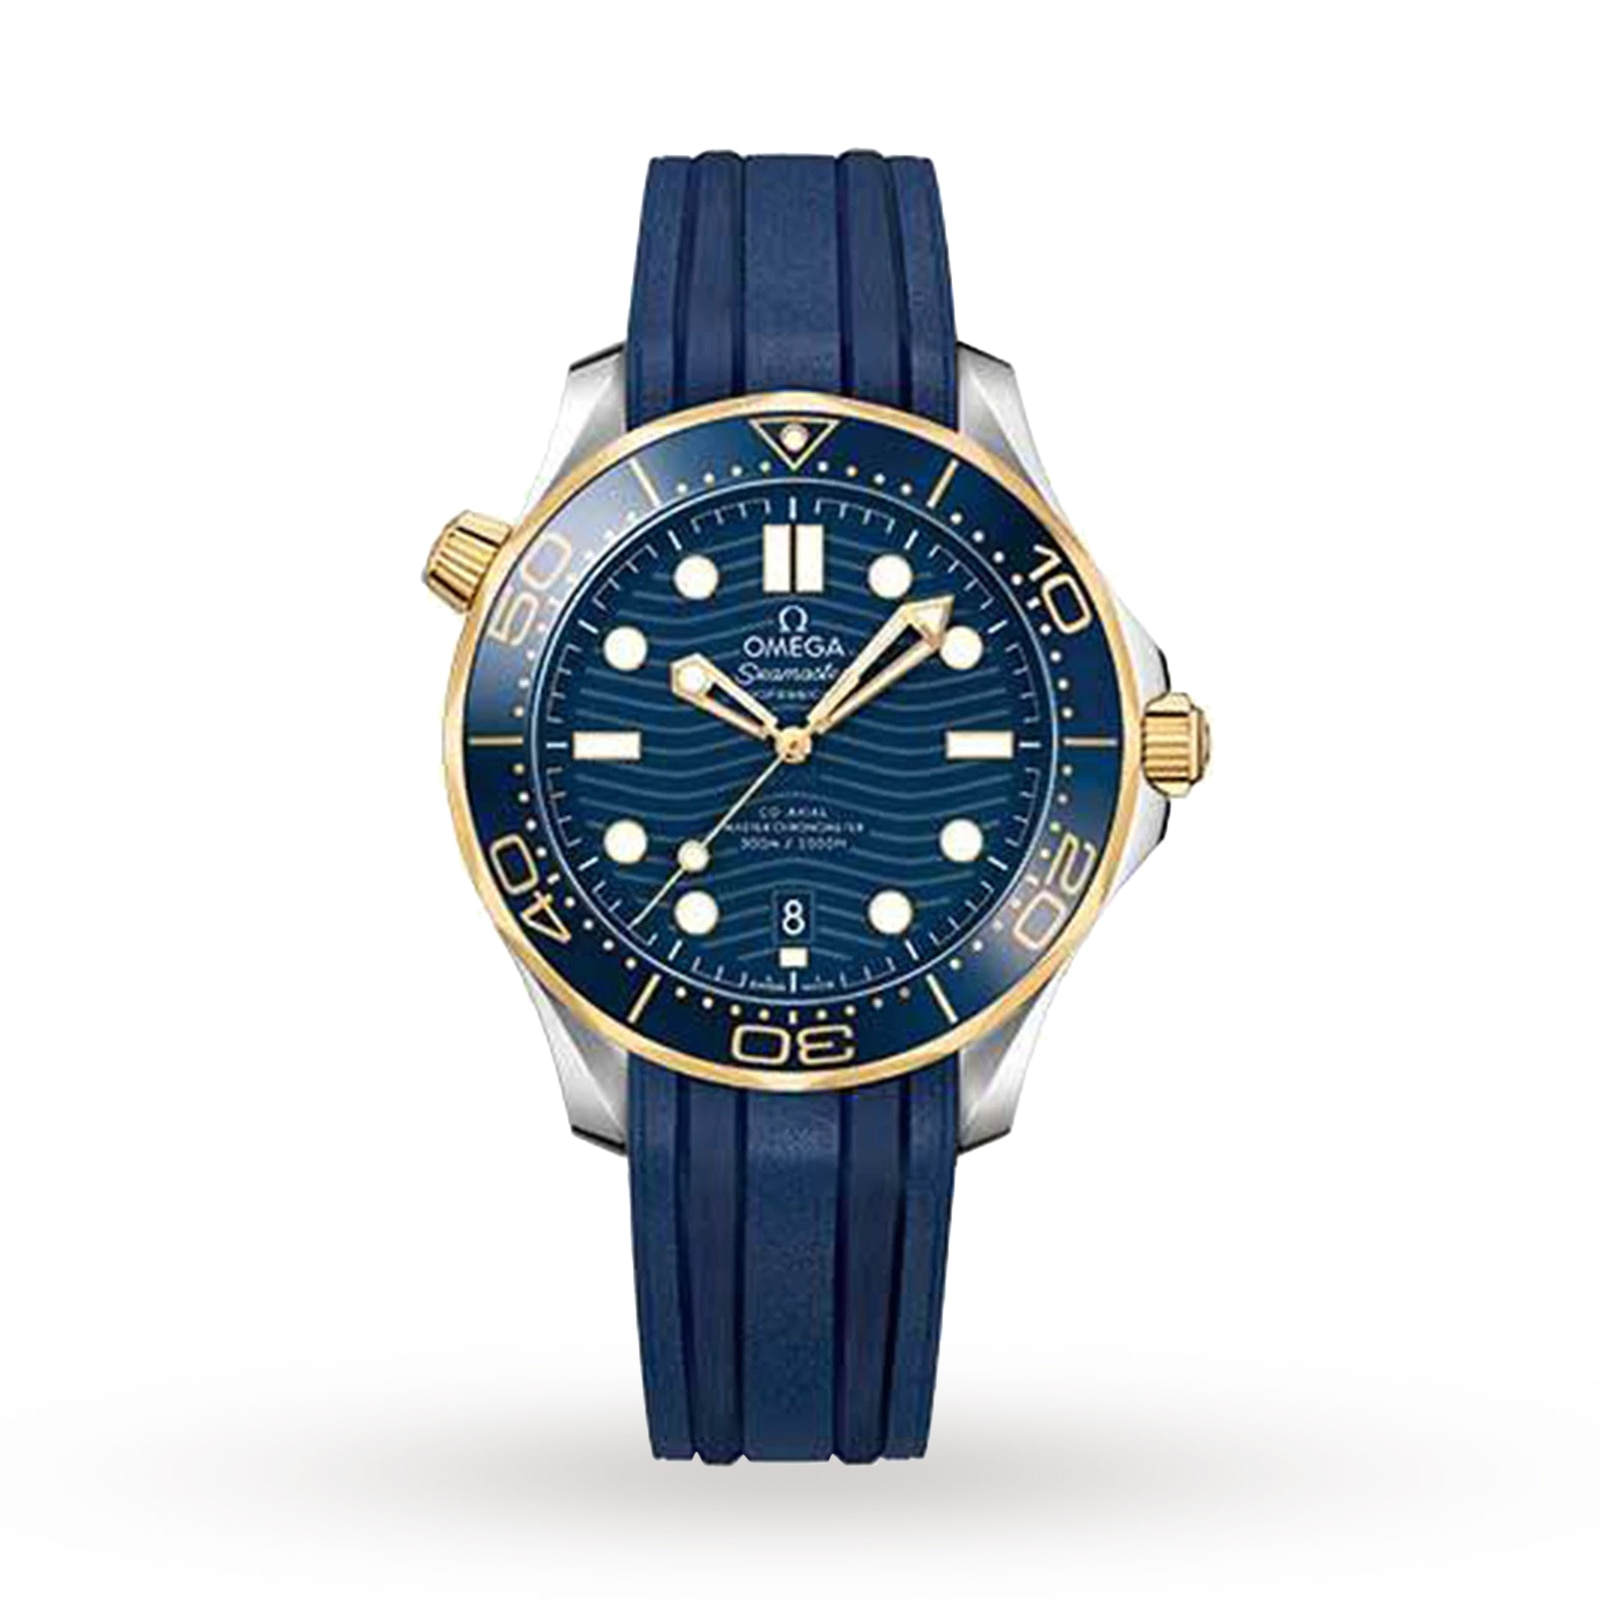 Omega Seamaster Pro-Diver 300 Mens Watch